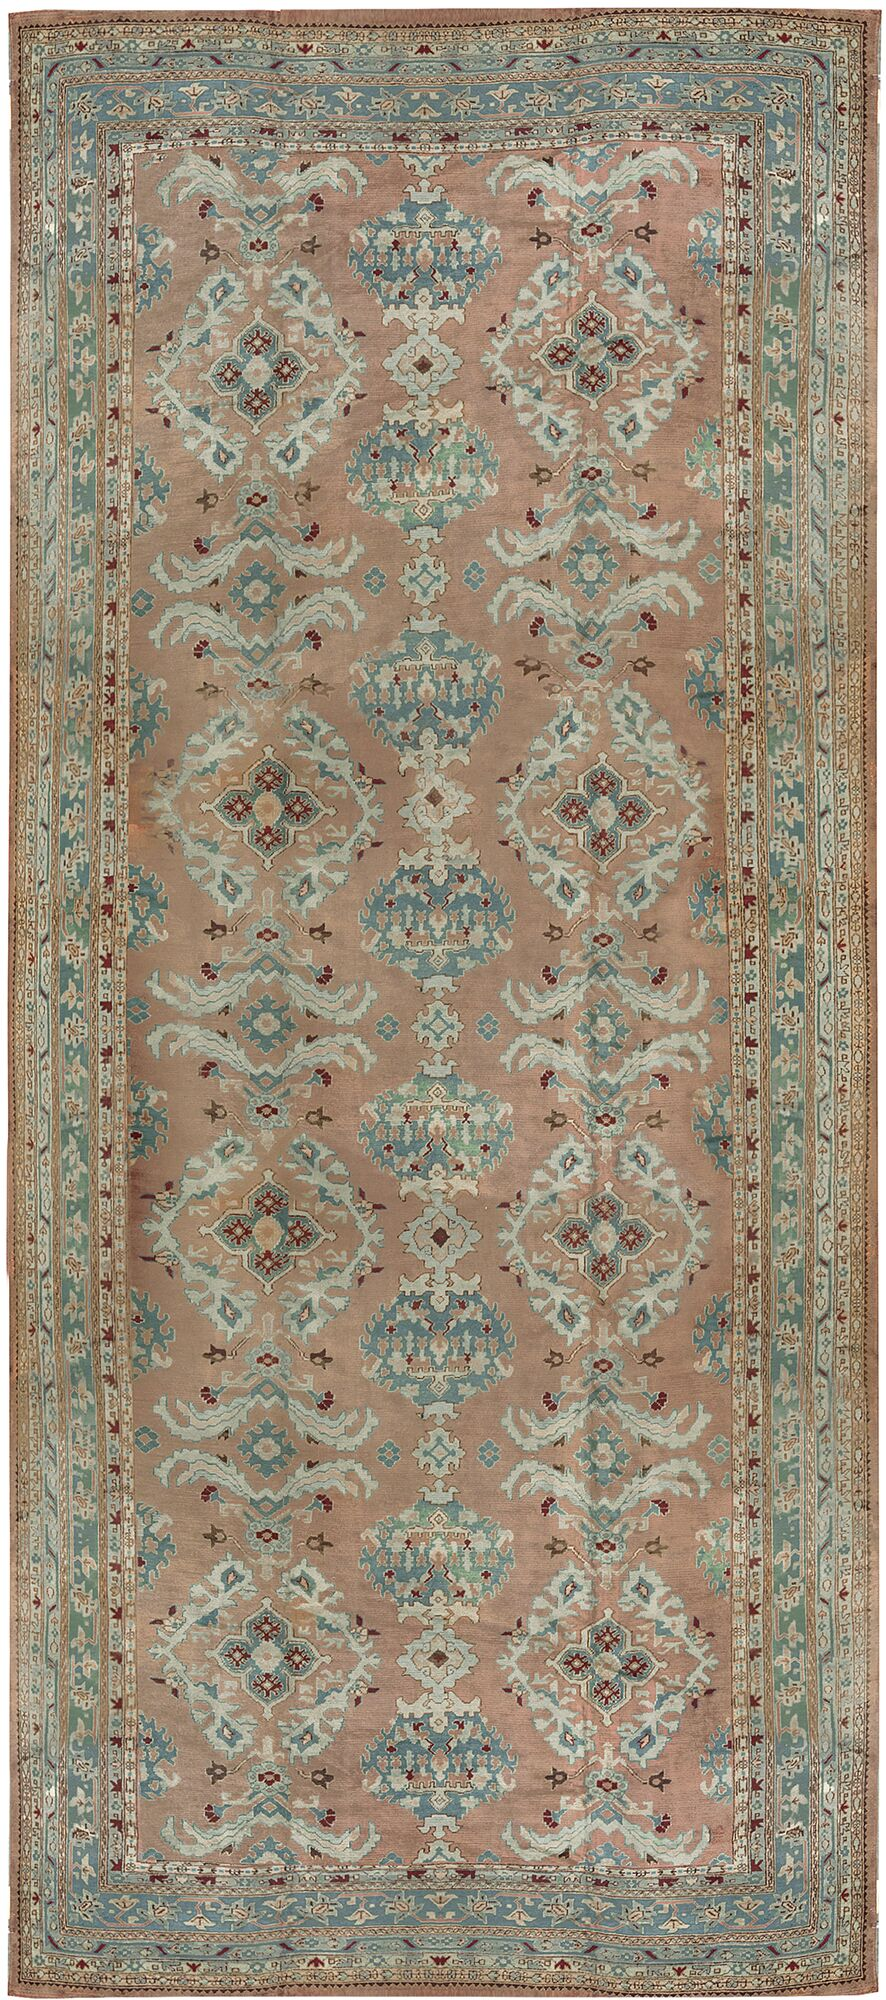 One-of-a-Kind Oushak Hand-Knotted Wool Rose/Aqua Indoor Area Rug